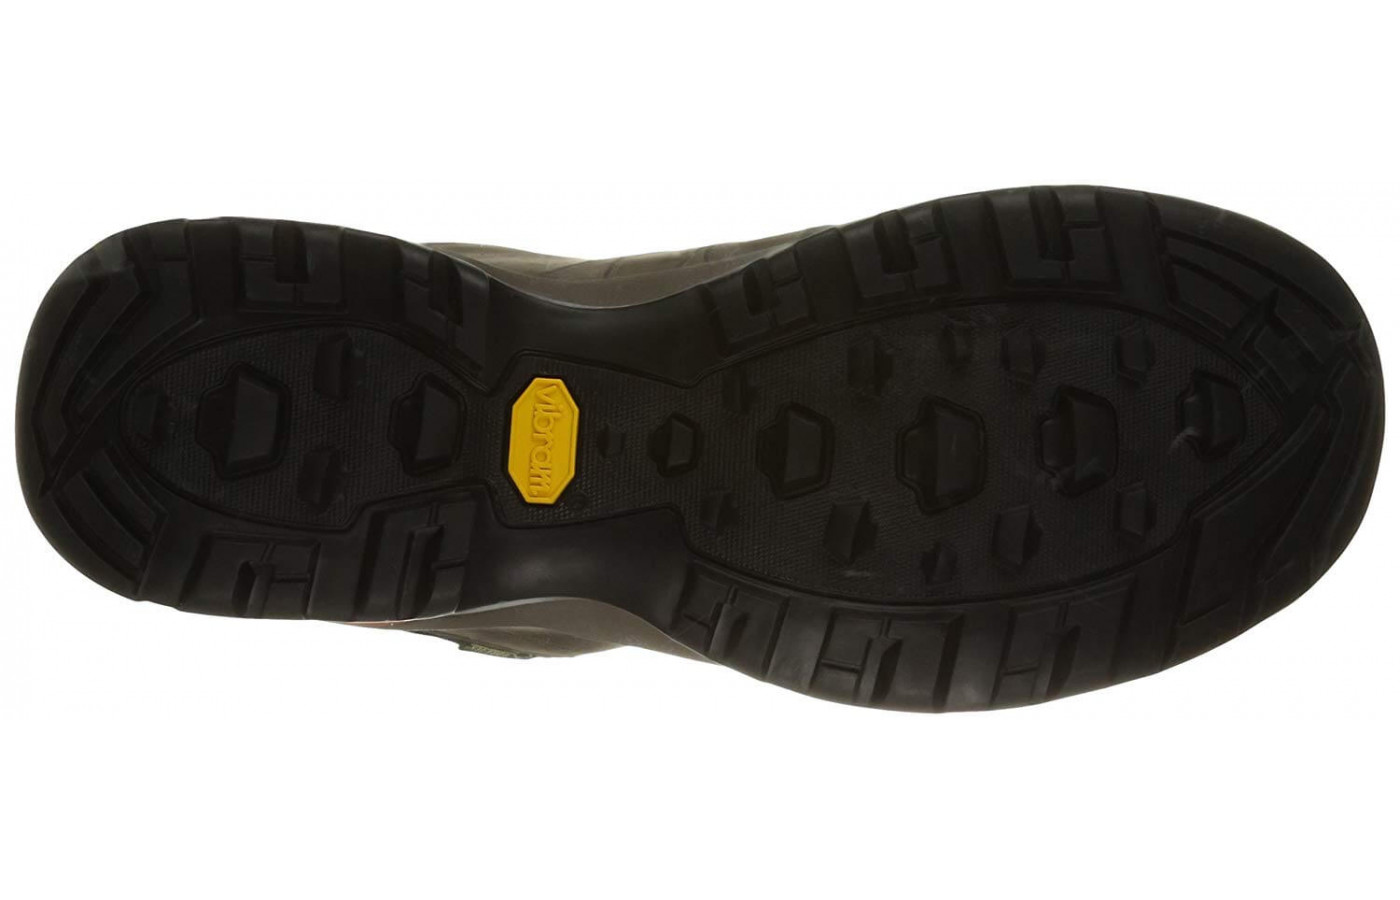 Scarpa relies on Vibram to create the Moraine Plus GTX's outsole